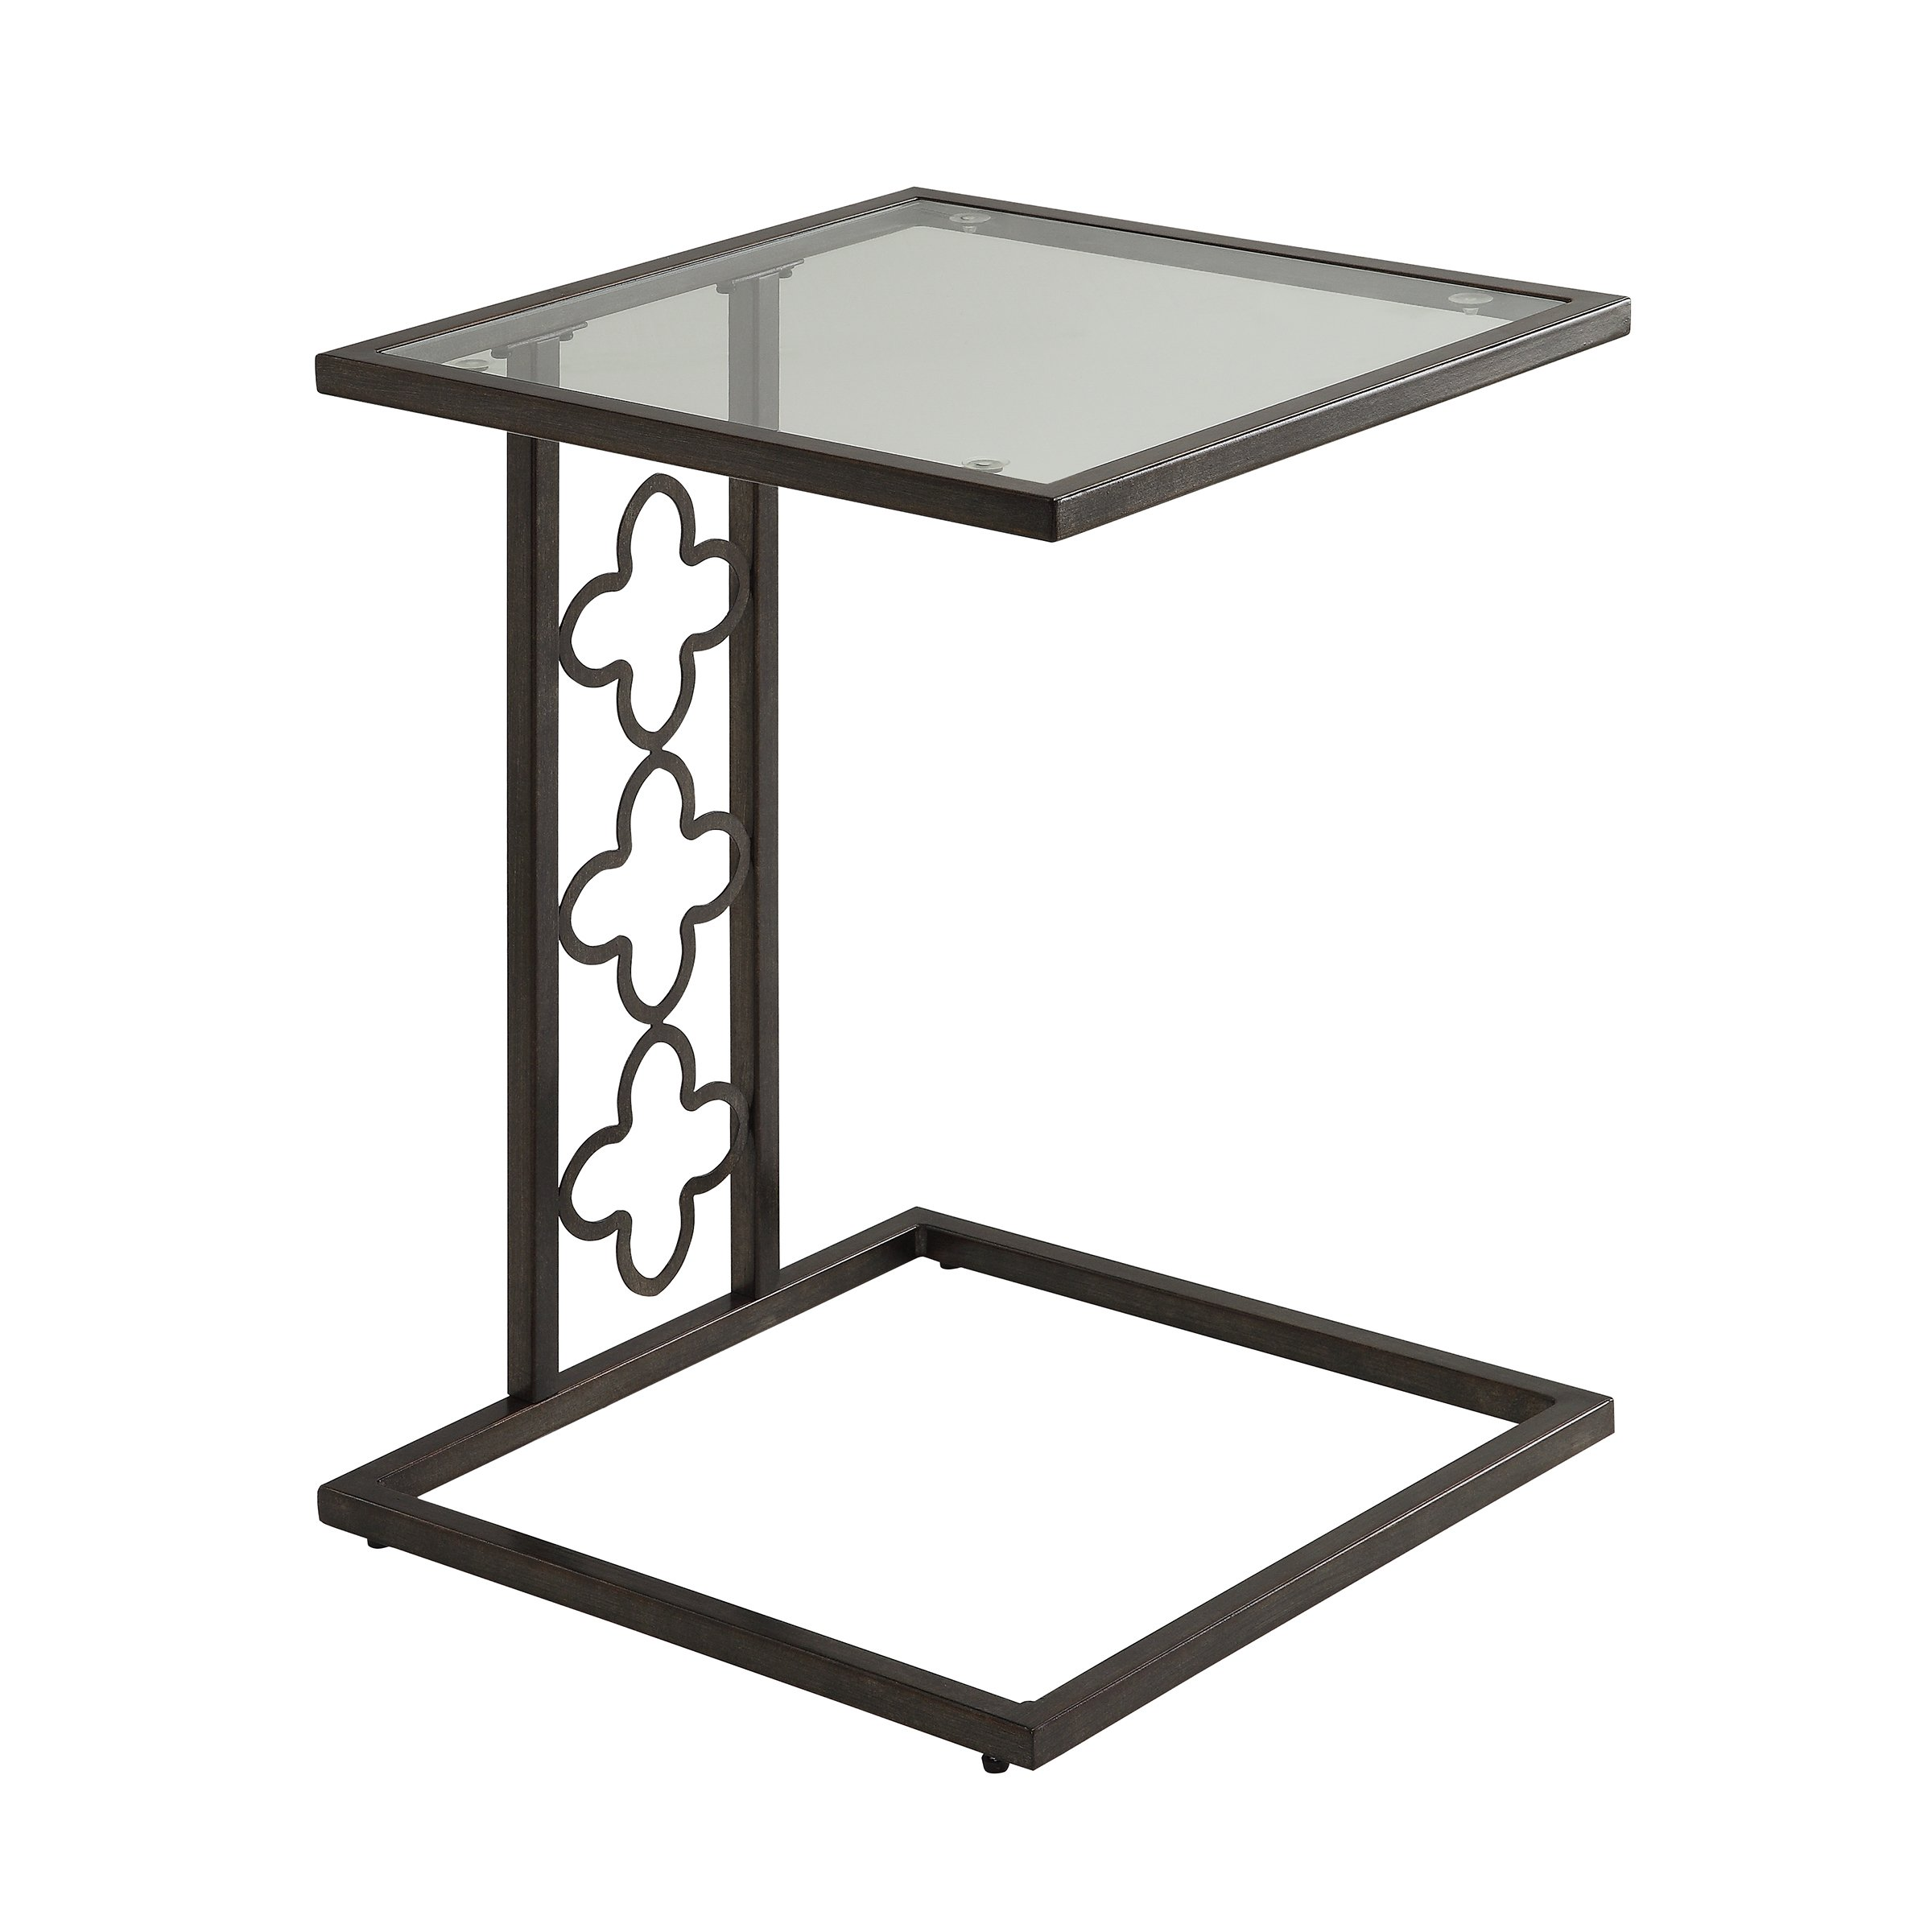 nico quatrefoil bronze metal glass accent table free shipping today small end with marble top black and chairs jcpenney drapes wall tall drawer antique kids furniture west elm